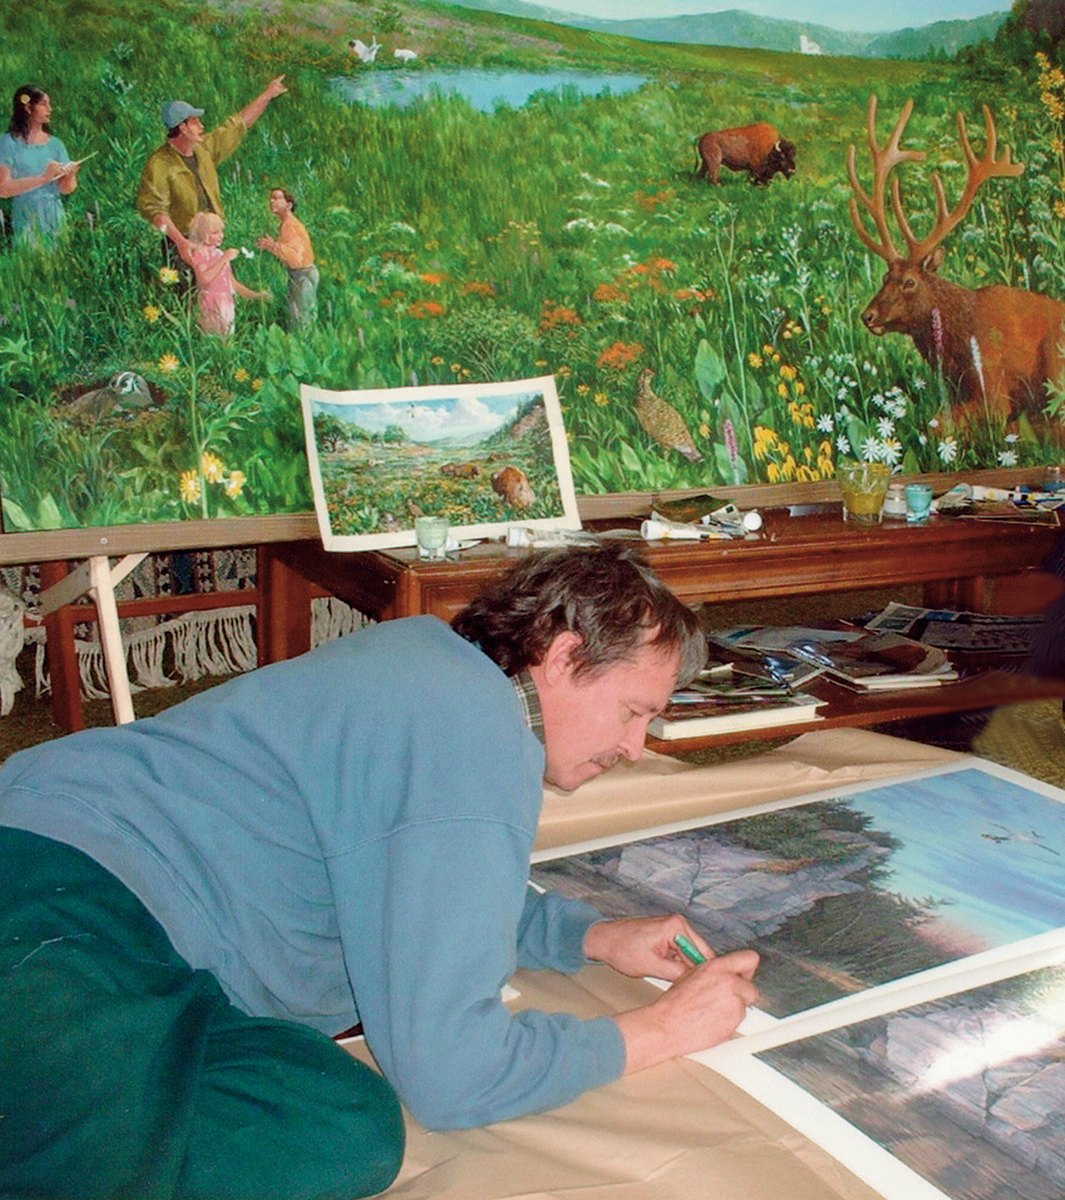 Victor Bakhtin working in studio on the Arboretum mural project.